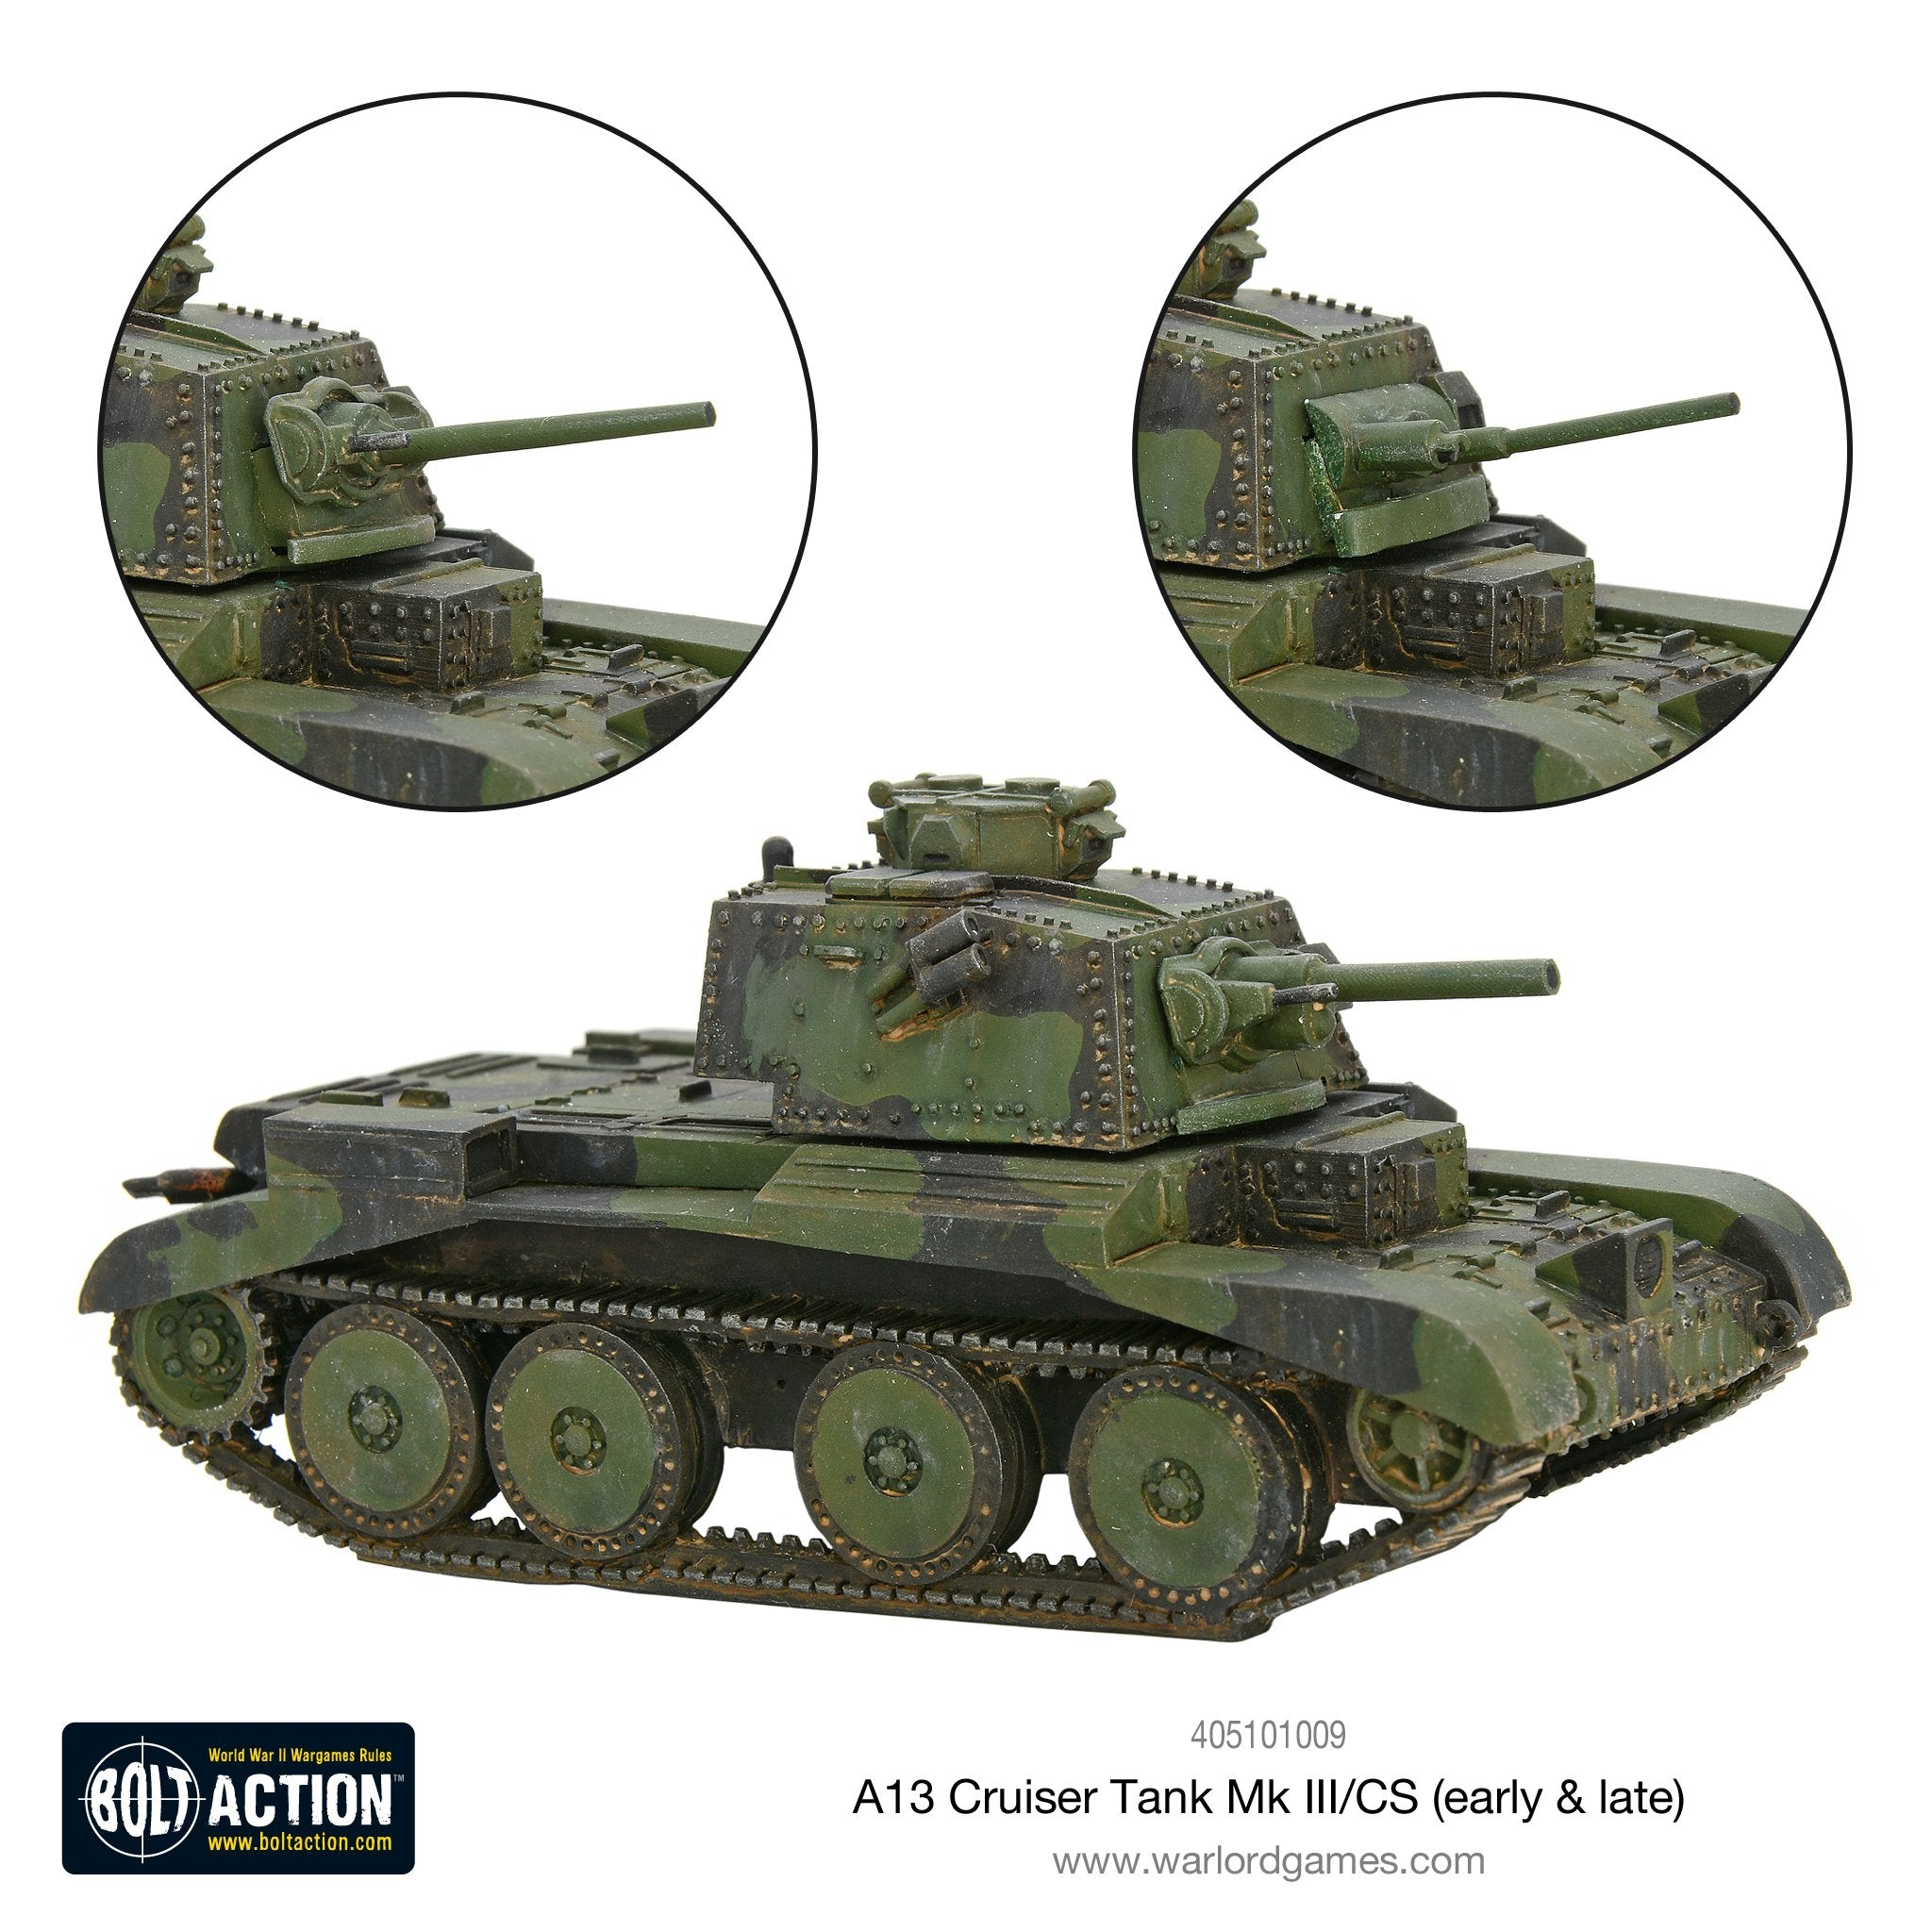 A13 cruiser tank Mk III/CS (early & late)